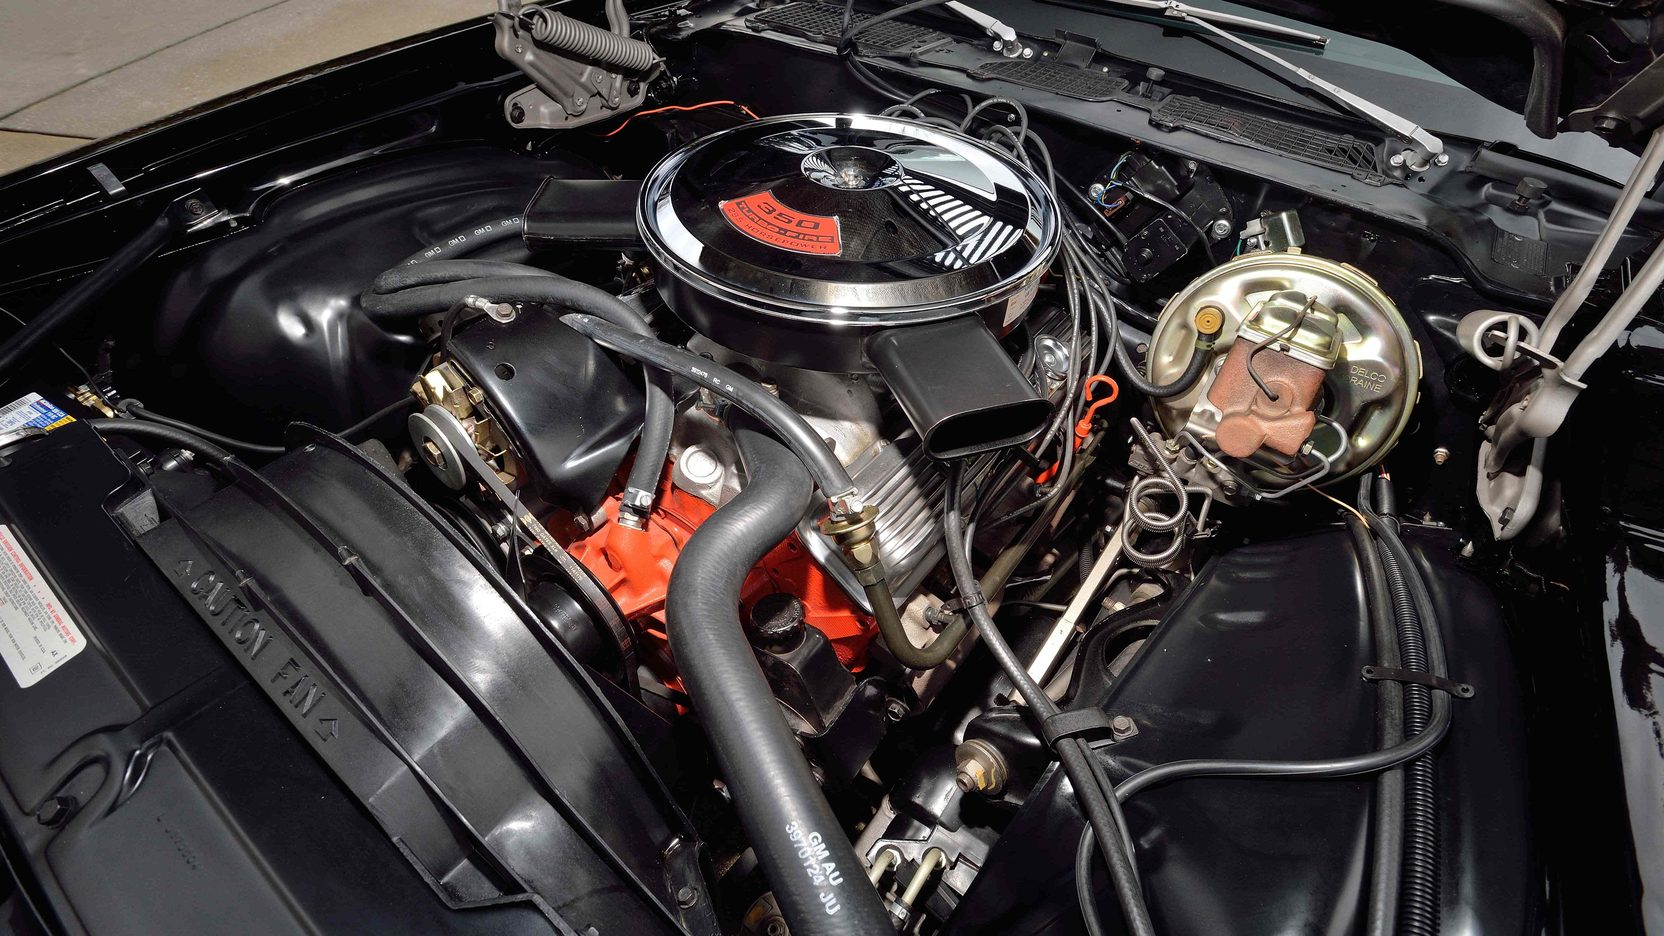 1972 Chevrolet Camaro Z28 engine